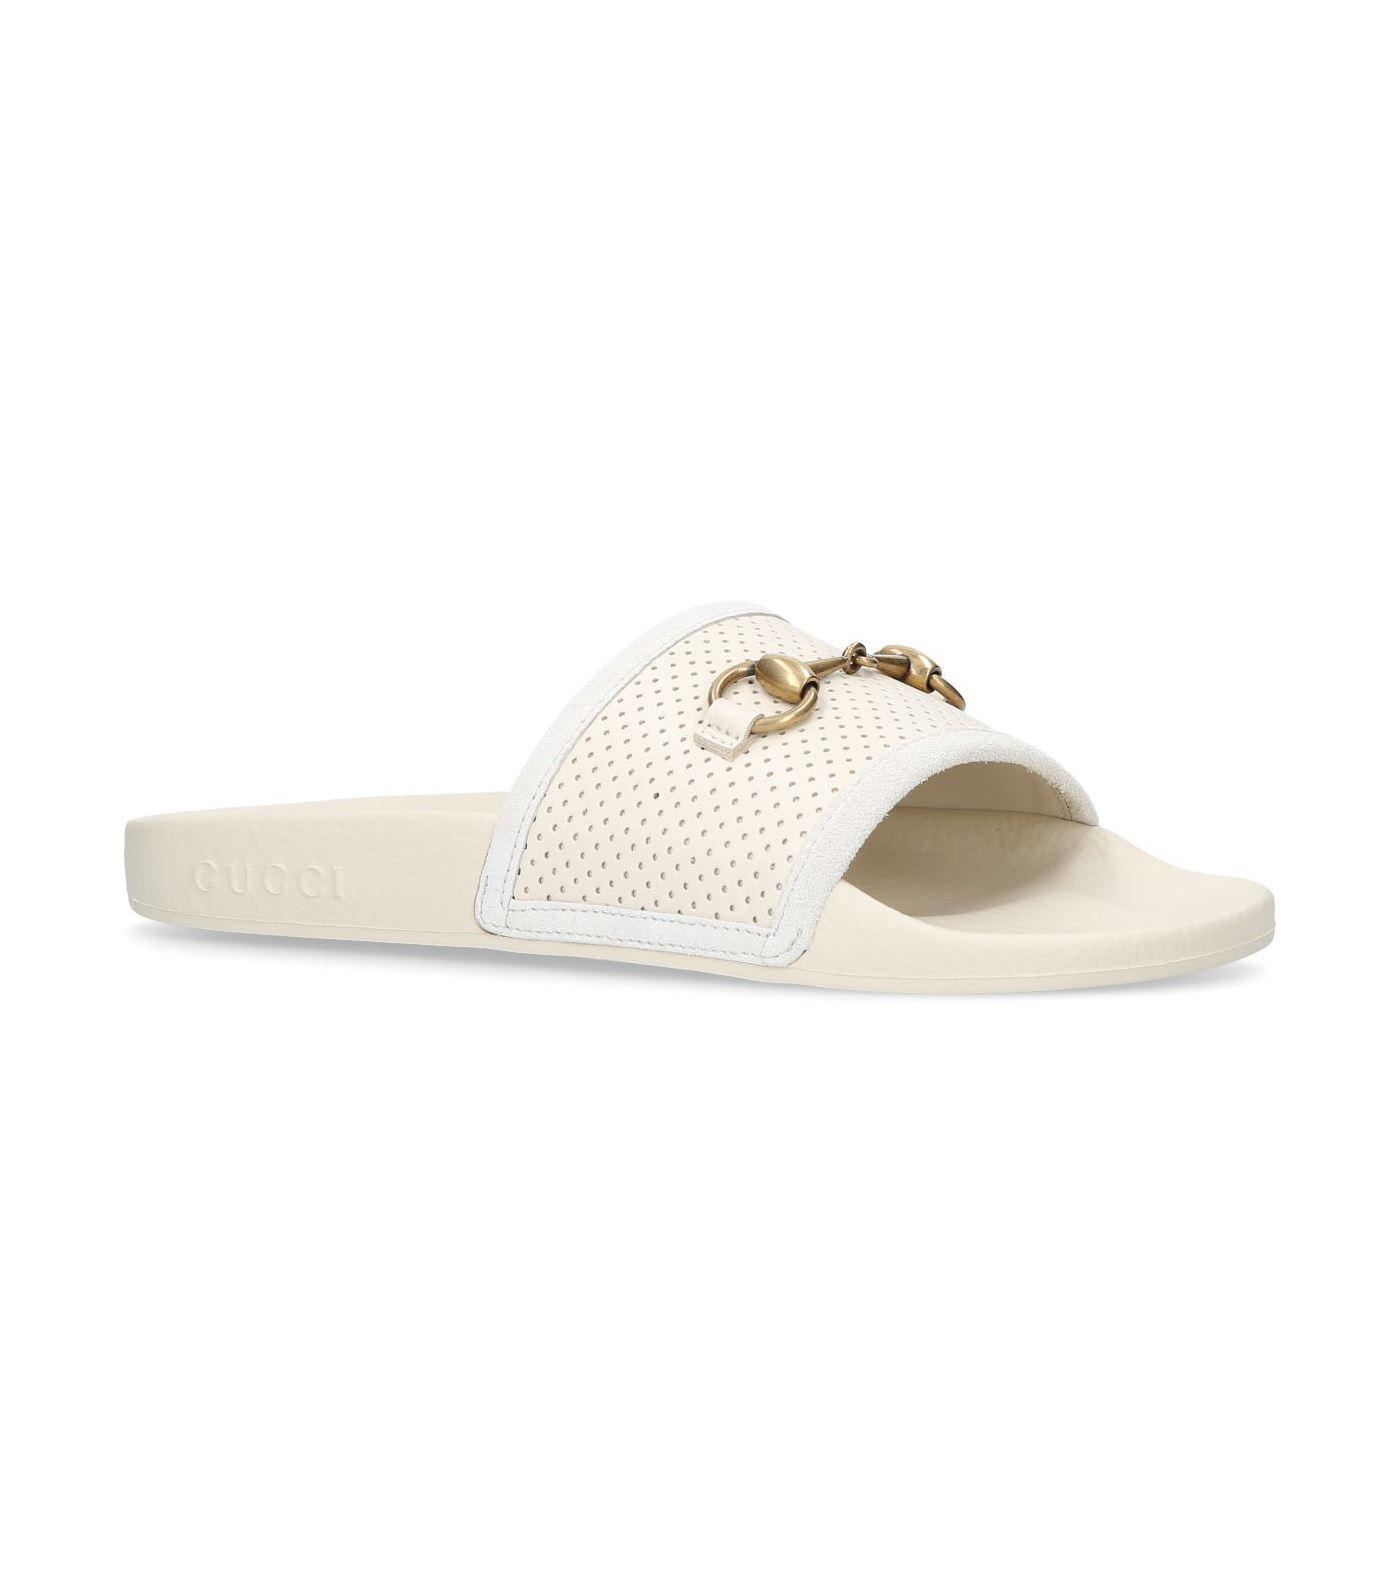 54d9e308944 Gucci - White Pursuit Slides - Lyst. View fullscreen